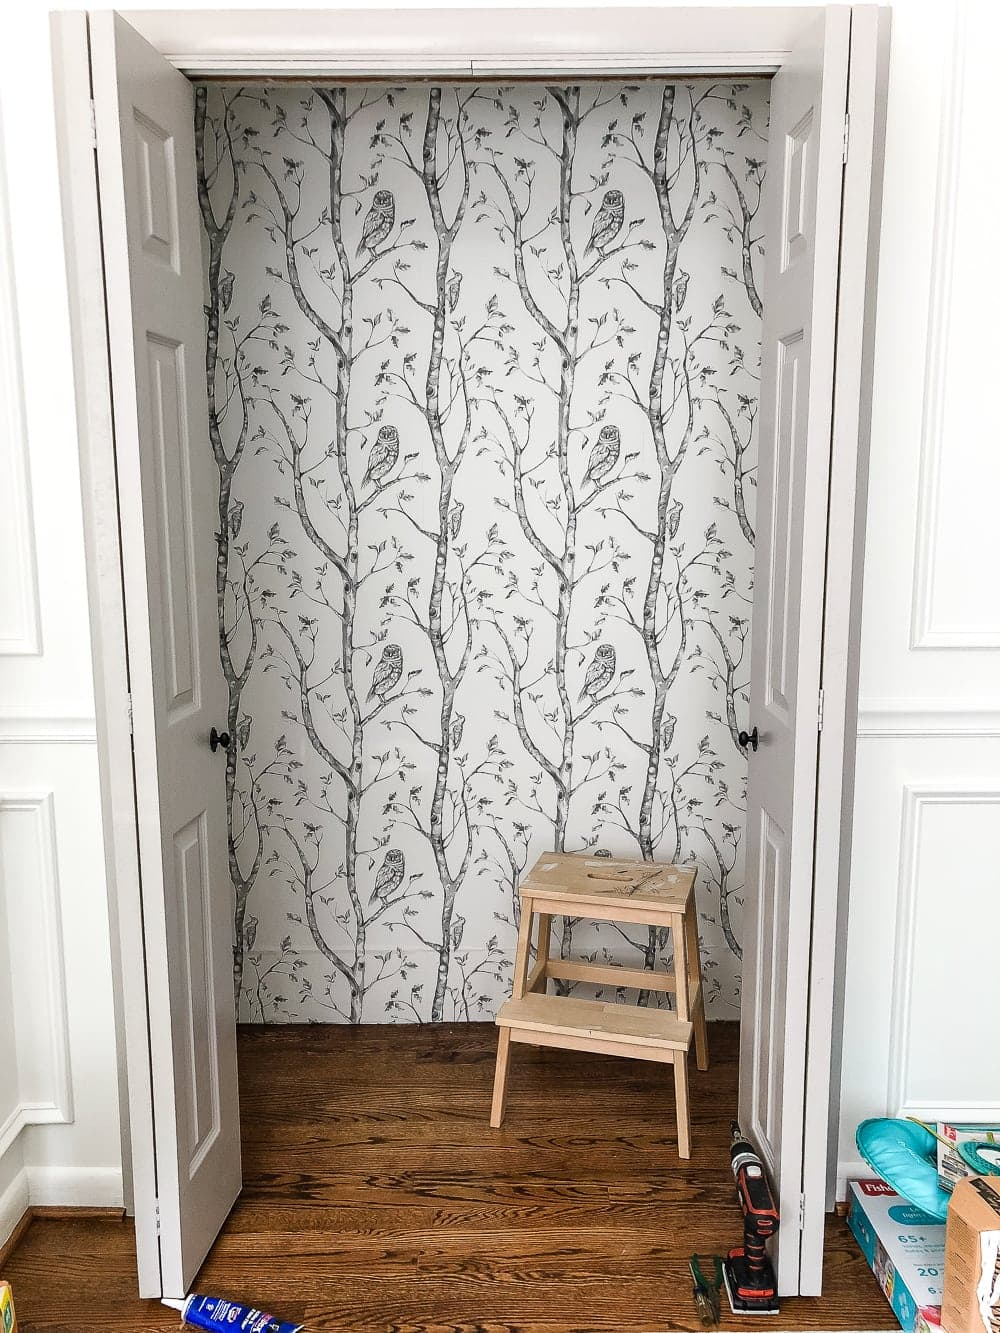 Nursery closet with peel and stick gray birch tree wallpaper